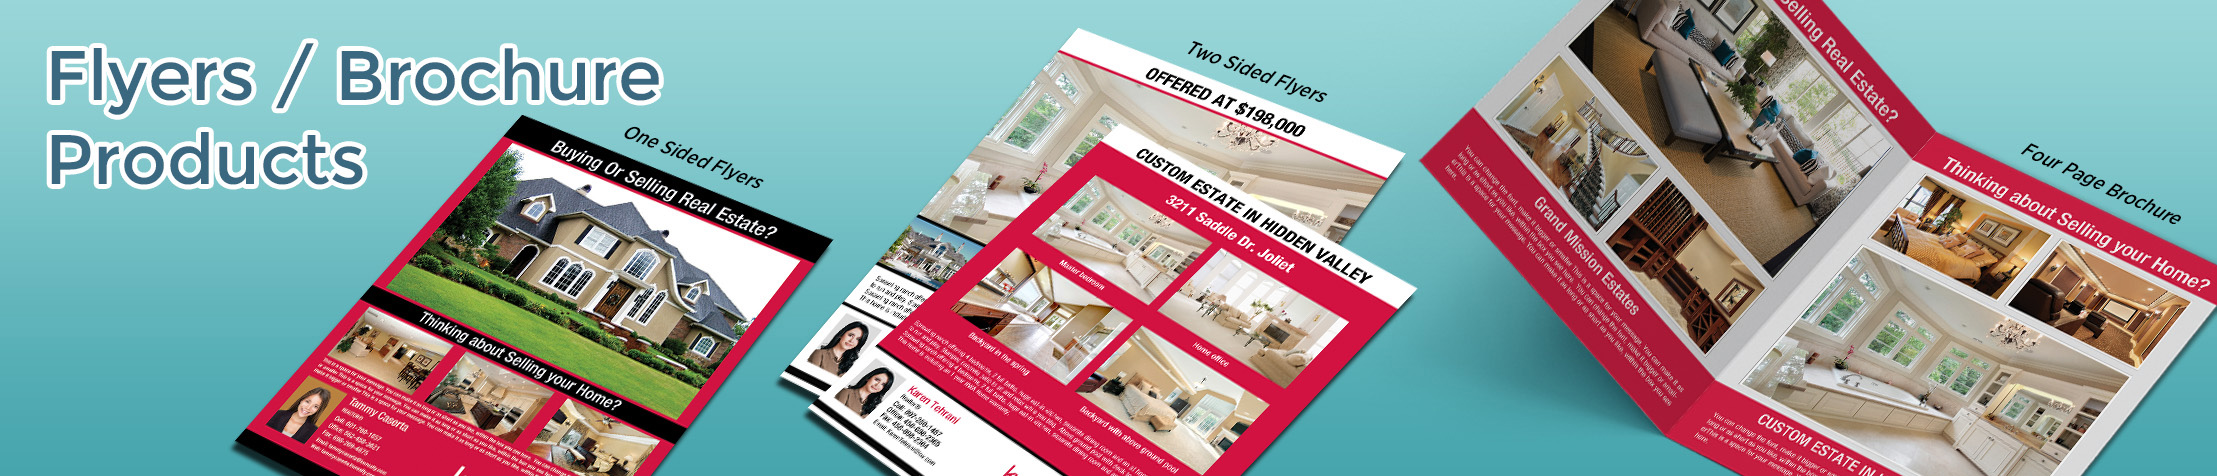 Keller Williams Real Estate Flyers and Brochures - KW approved vendor flyer and brochure templates for open houses and marketing | BestPrintBuy.com